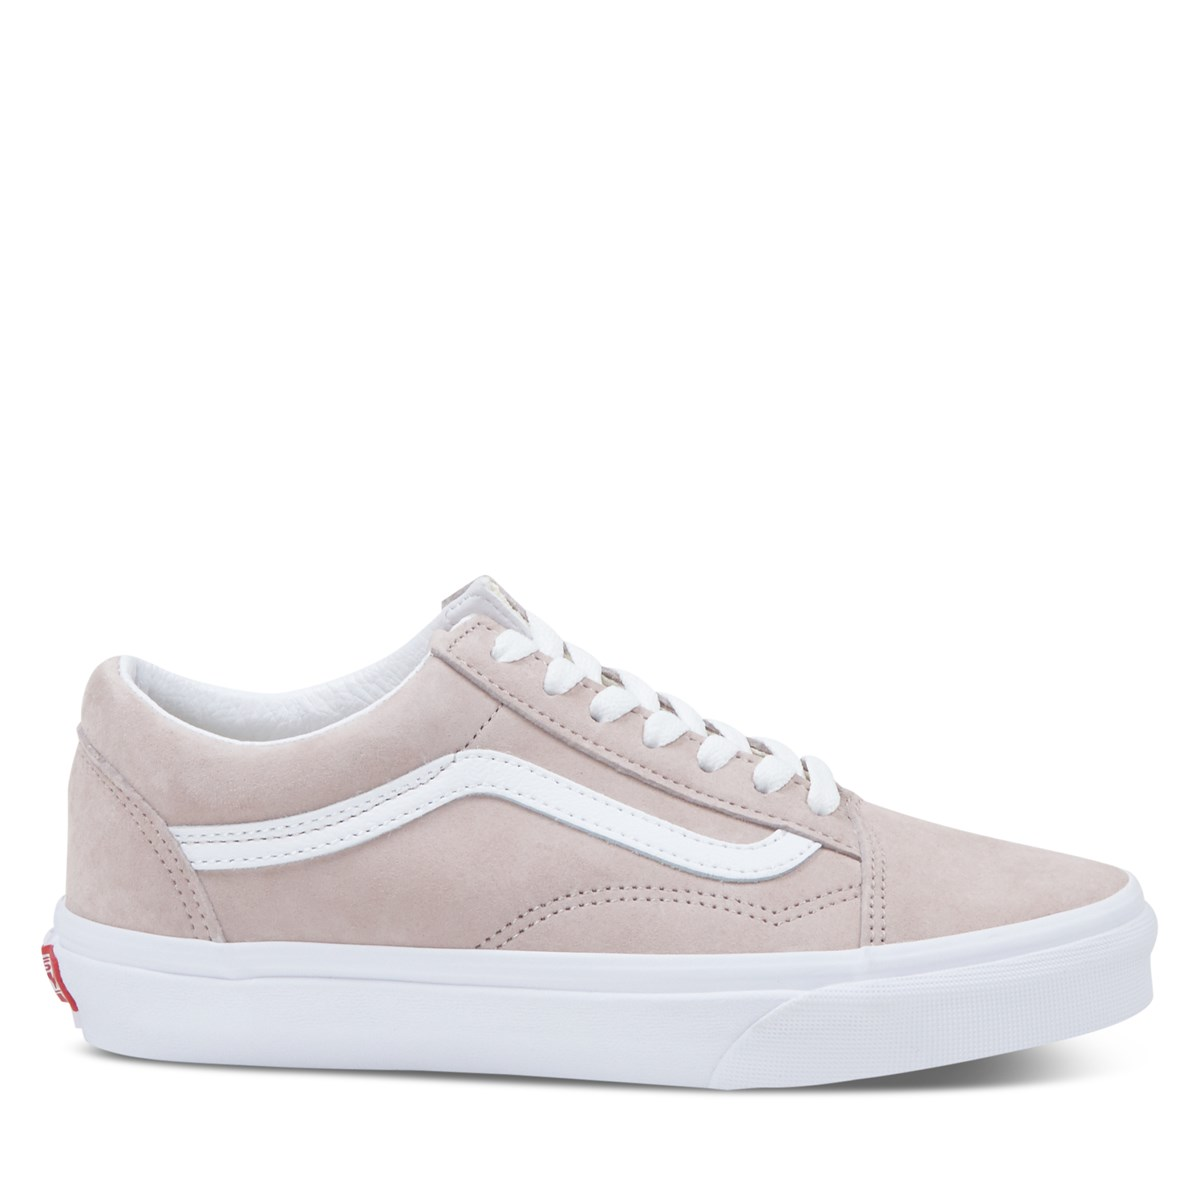 Women's Old Skool Sneakers in Pink Suede